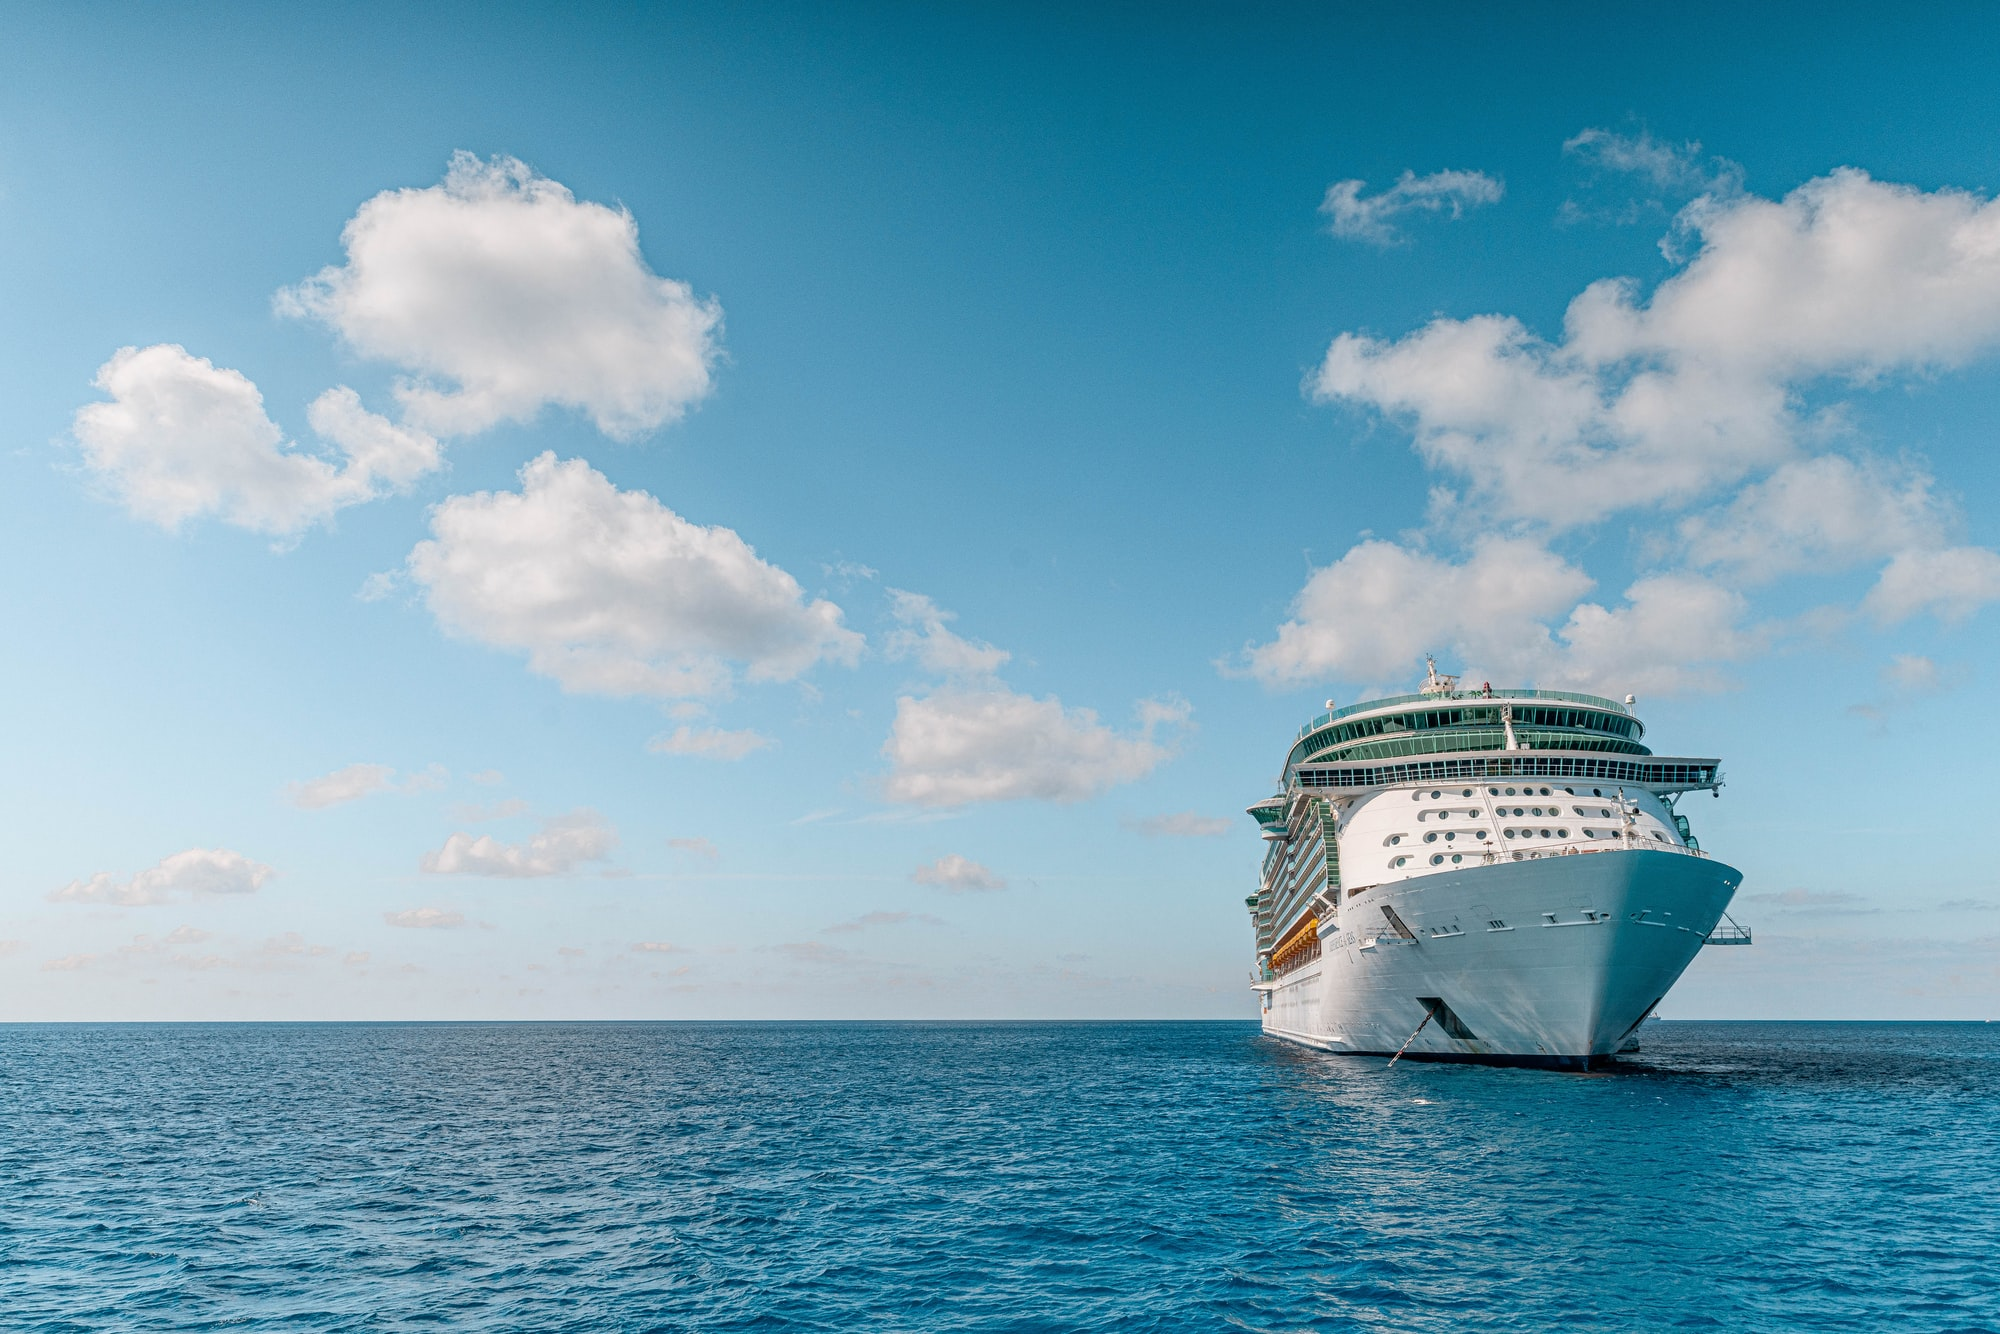 The Independence of the Seas cruise ship off the coast of the Cayman Islands.